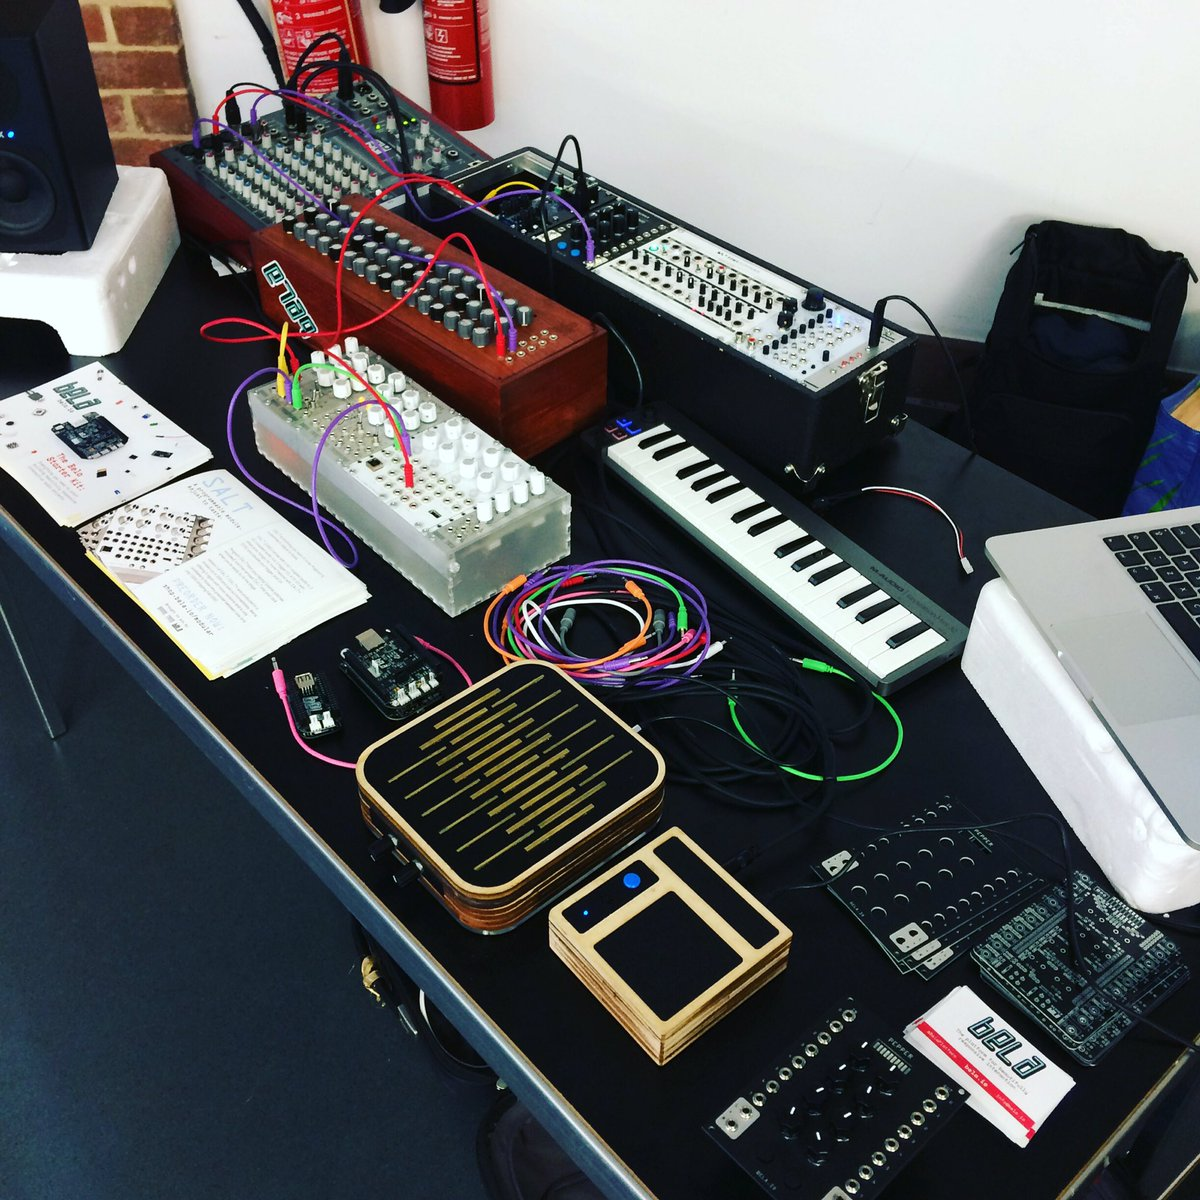 @BrightonModular what a day with a whole host of Bela @beagleboardorg synthesisers and sound makers! #eurorack #opensource #diy #synth @HashtagPureData